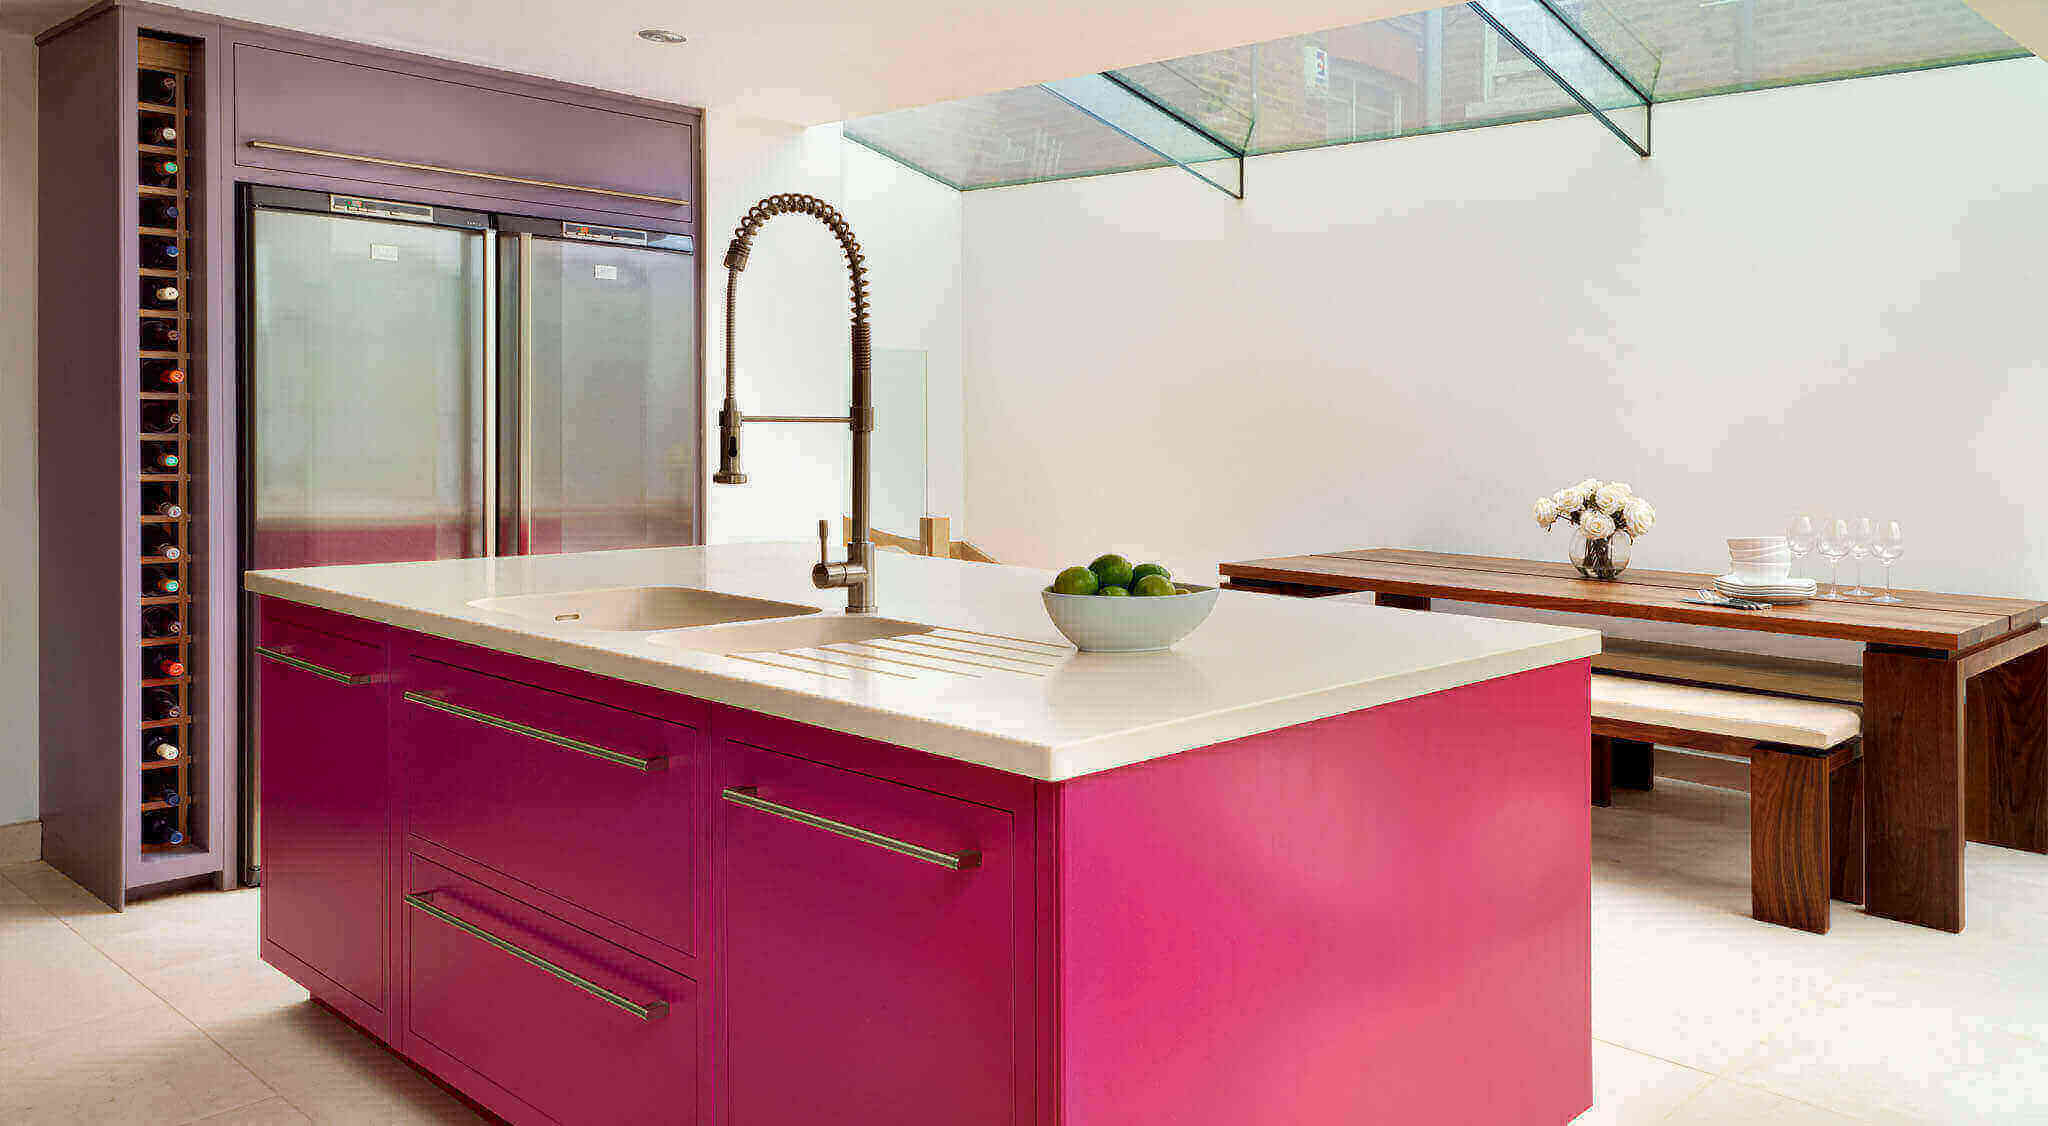 Hot Pink Linear Kitchen